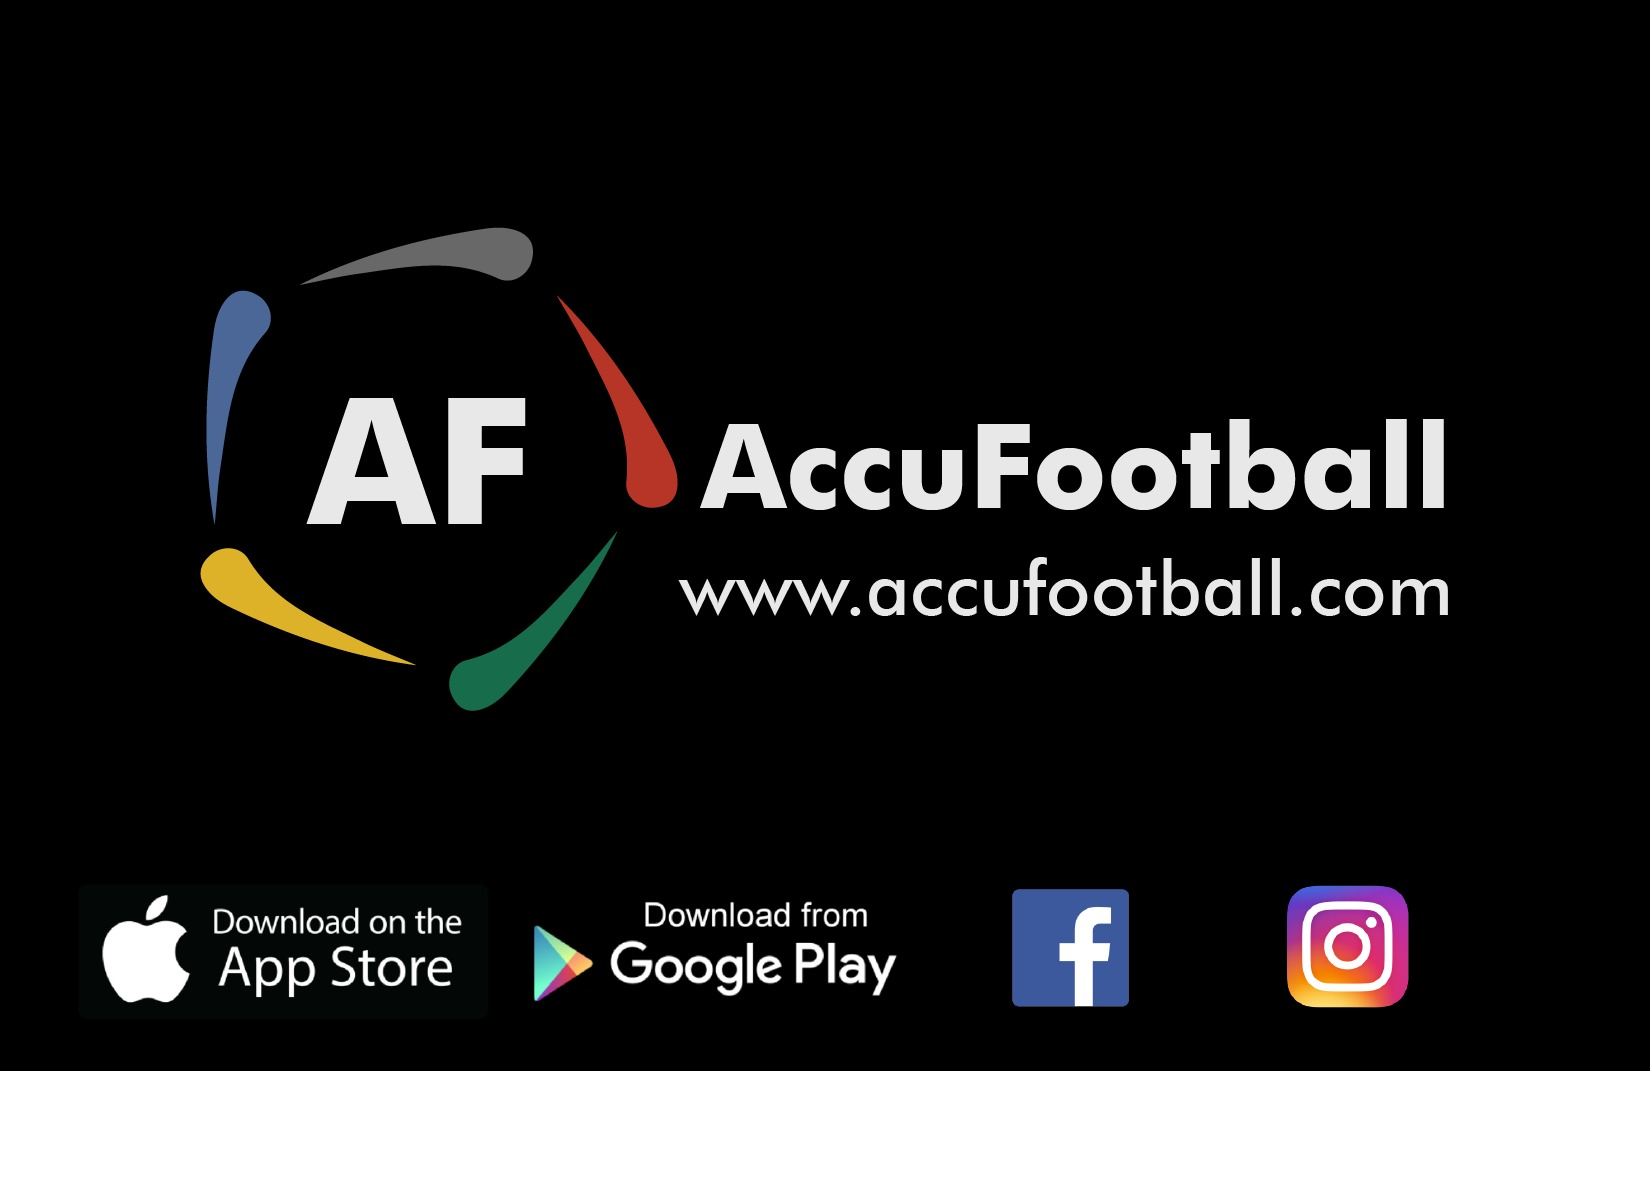 Accufootball